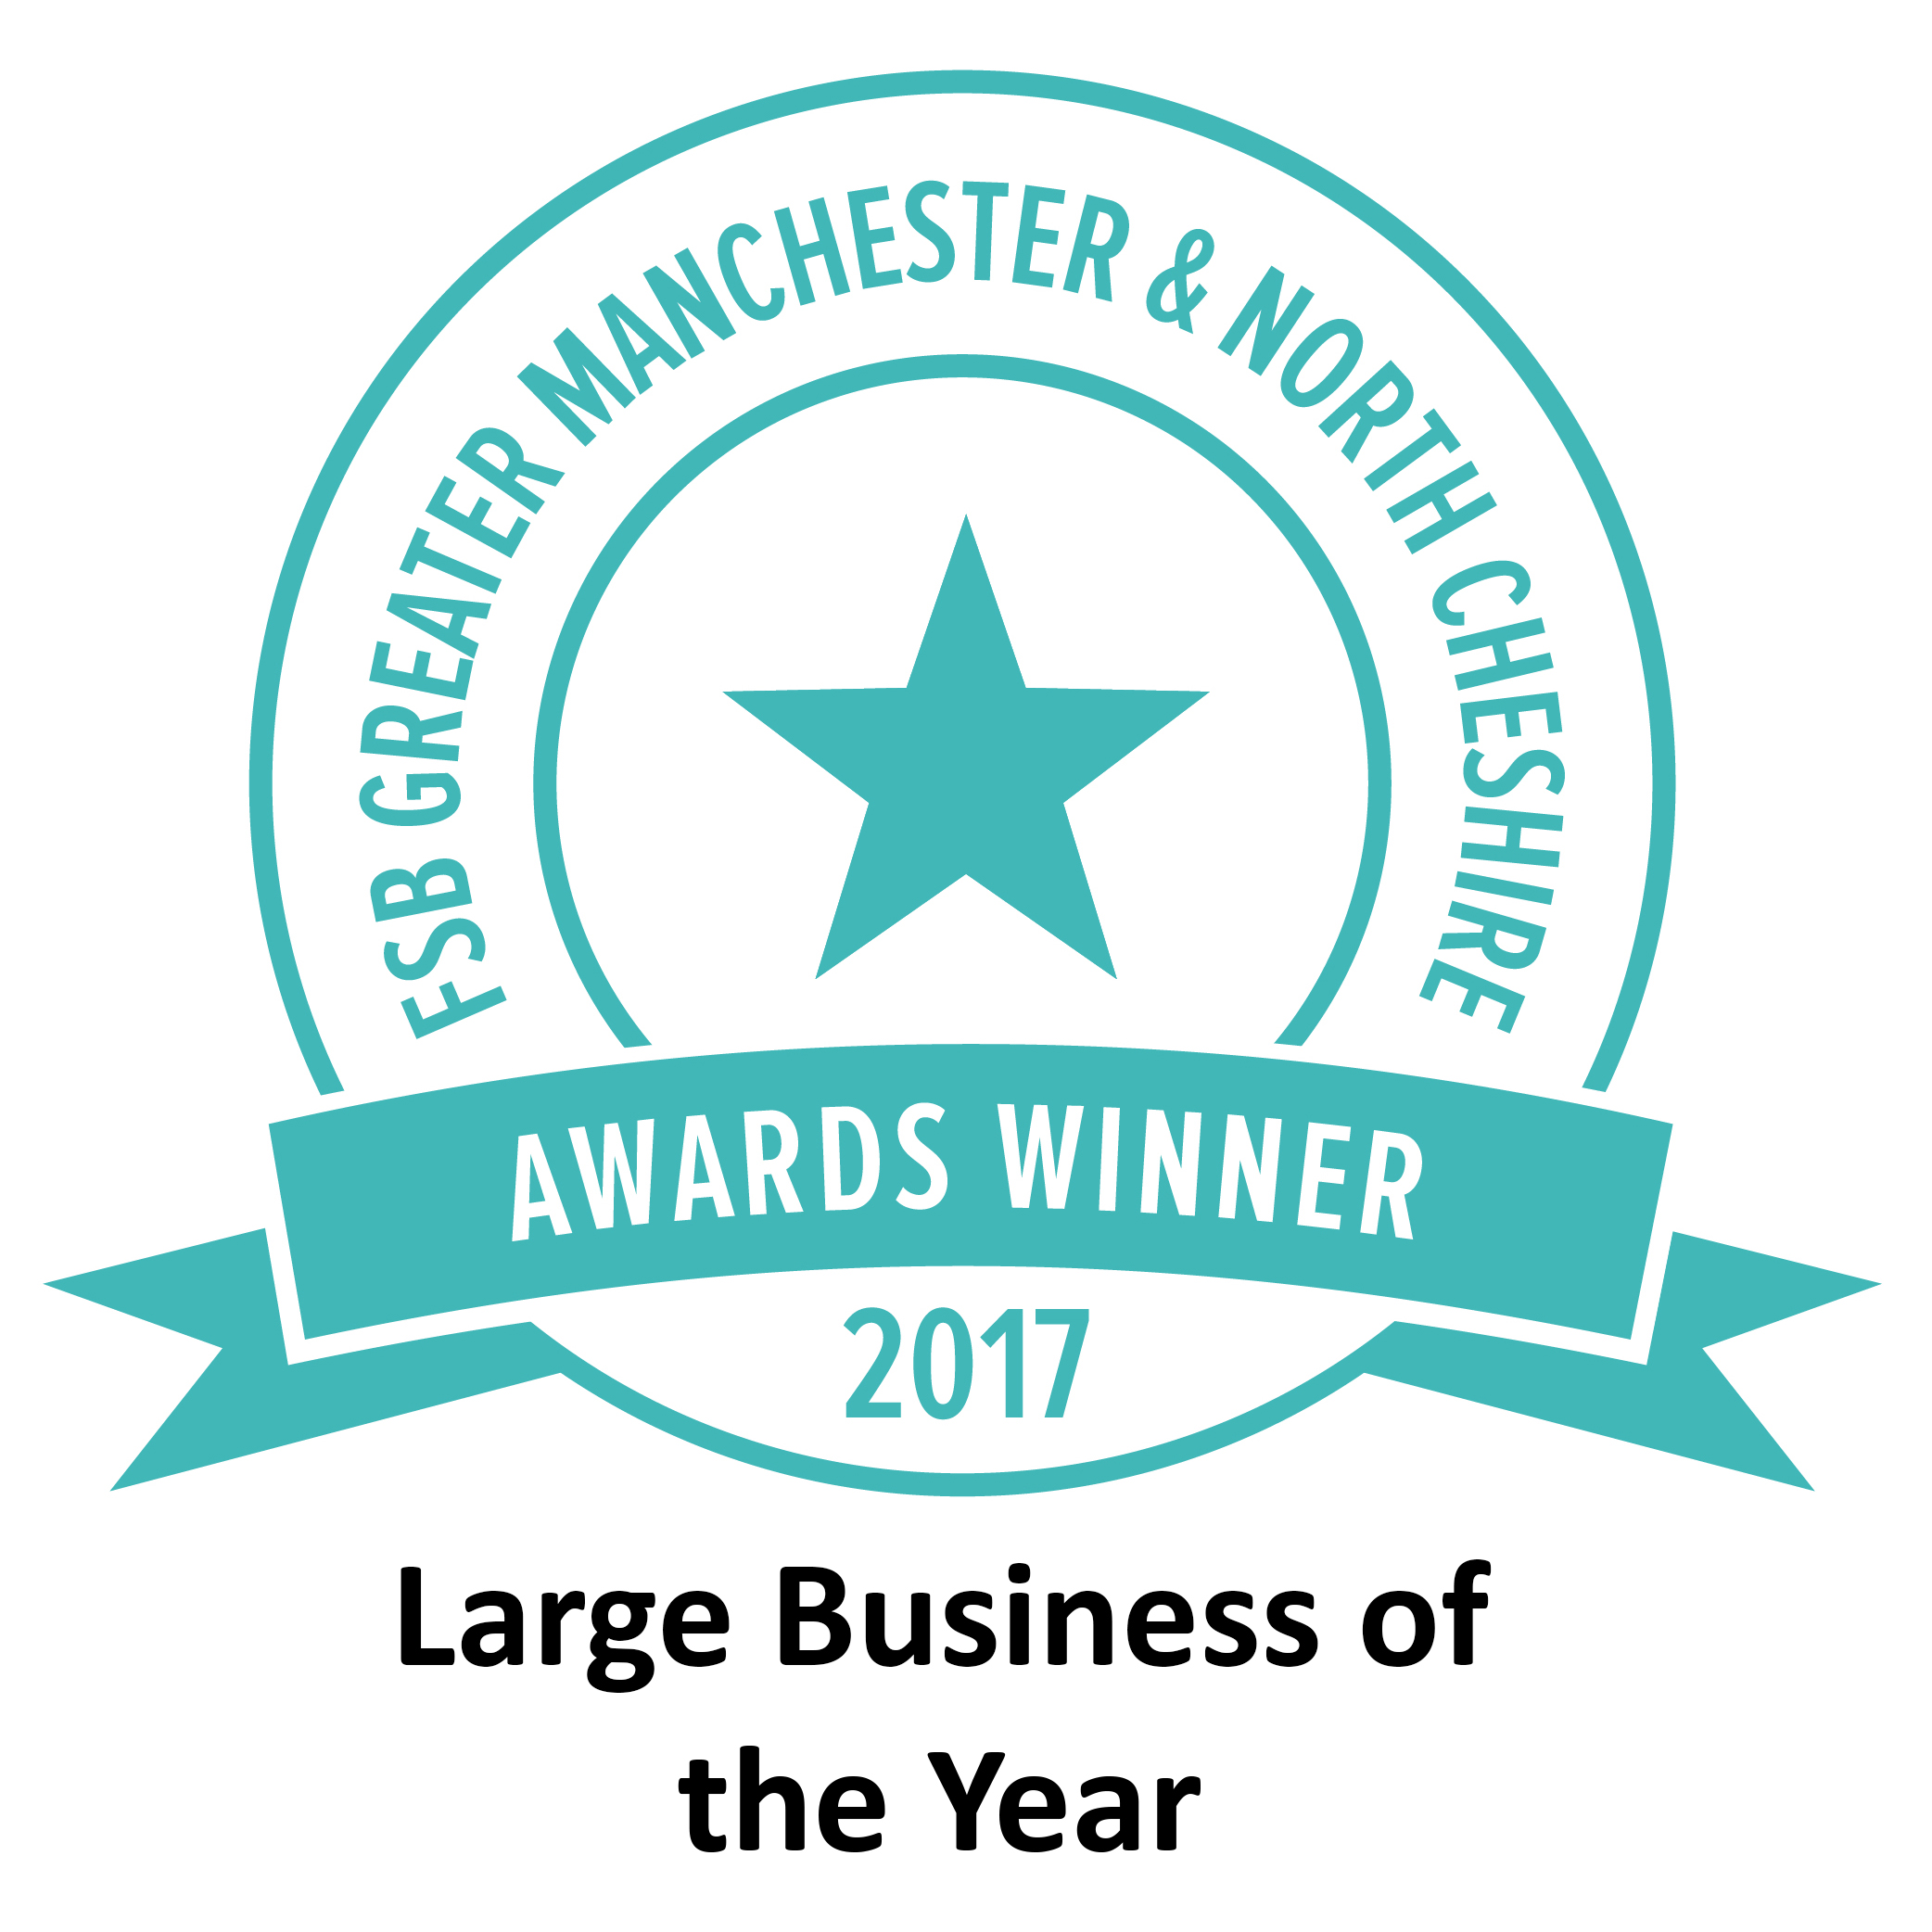 fsb awards large business of the year 2017